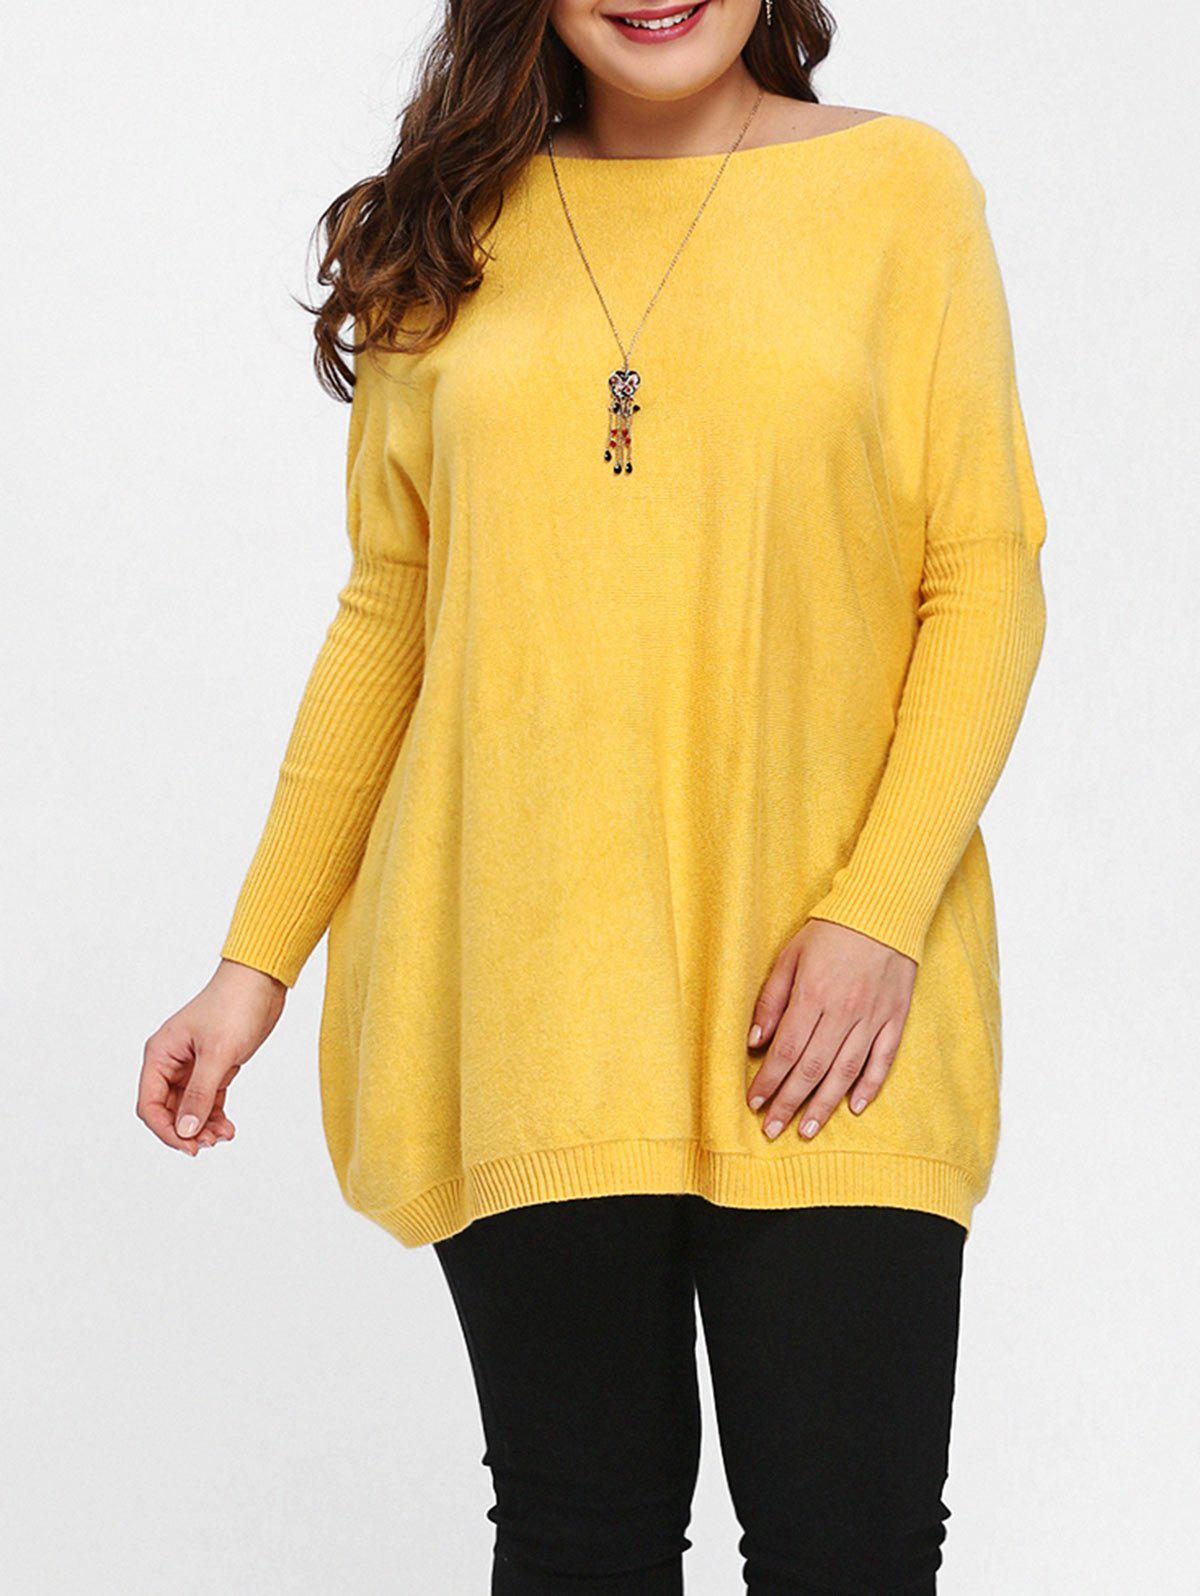 Plus Size Knit Dolman Sleeve Tunic Sweater - YELLOW ONE SIZE